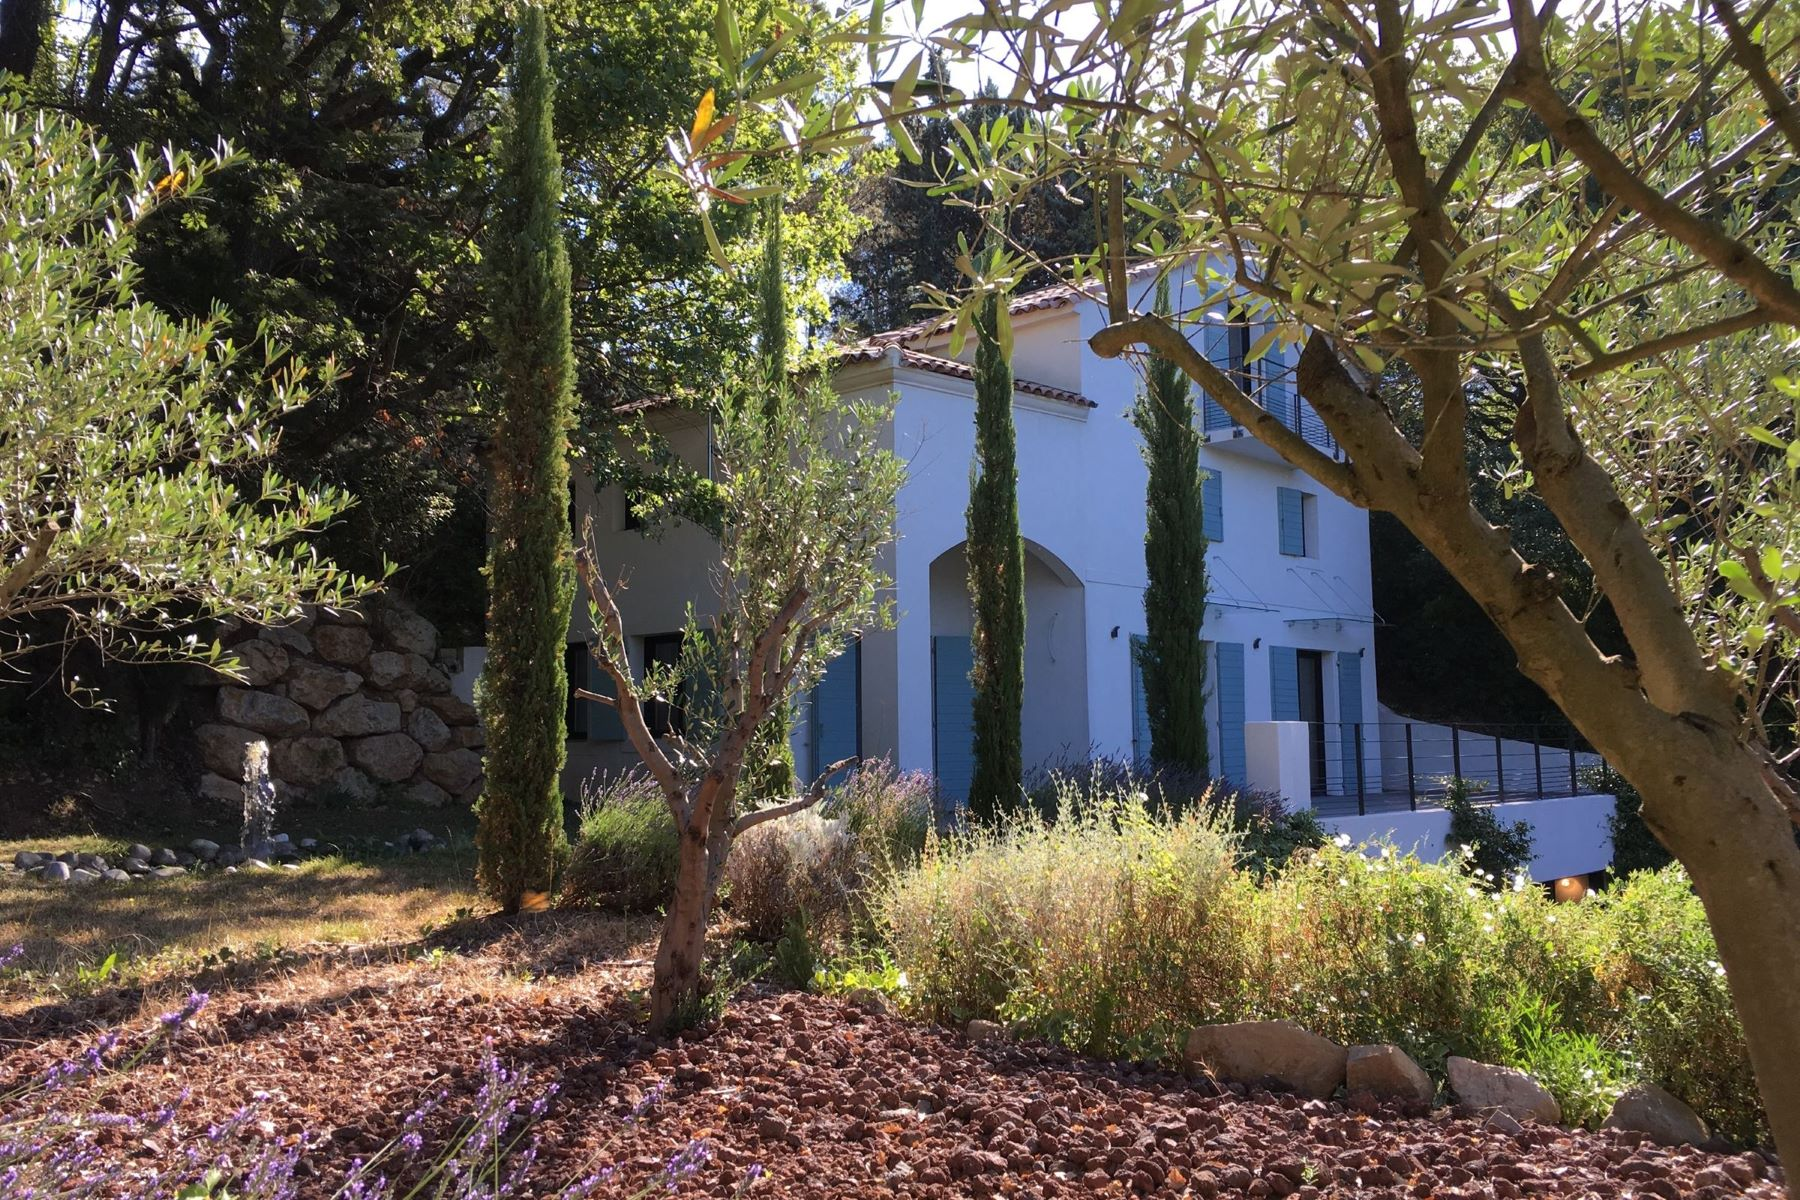 Single Family Home for Sale at Magnificient contempory house Aix-En-Provence, Provence-Alpes-Cote D'Azur, 13100 France